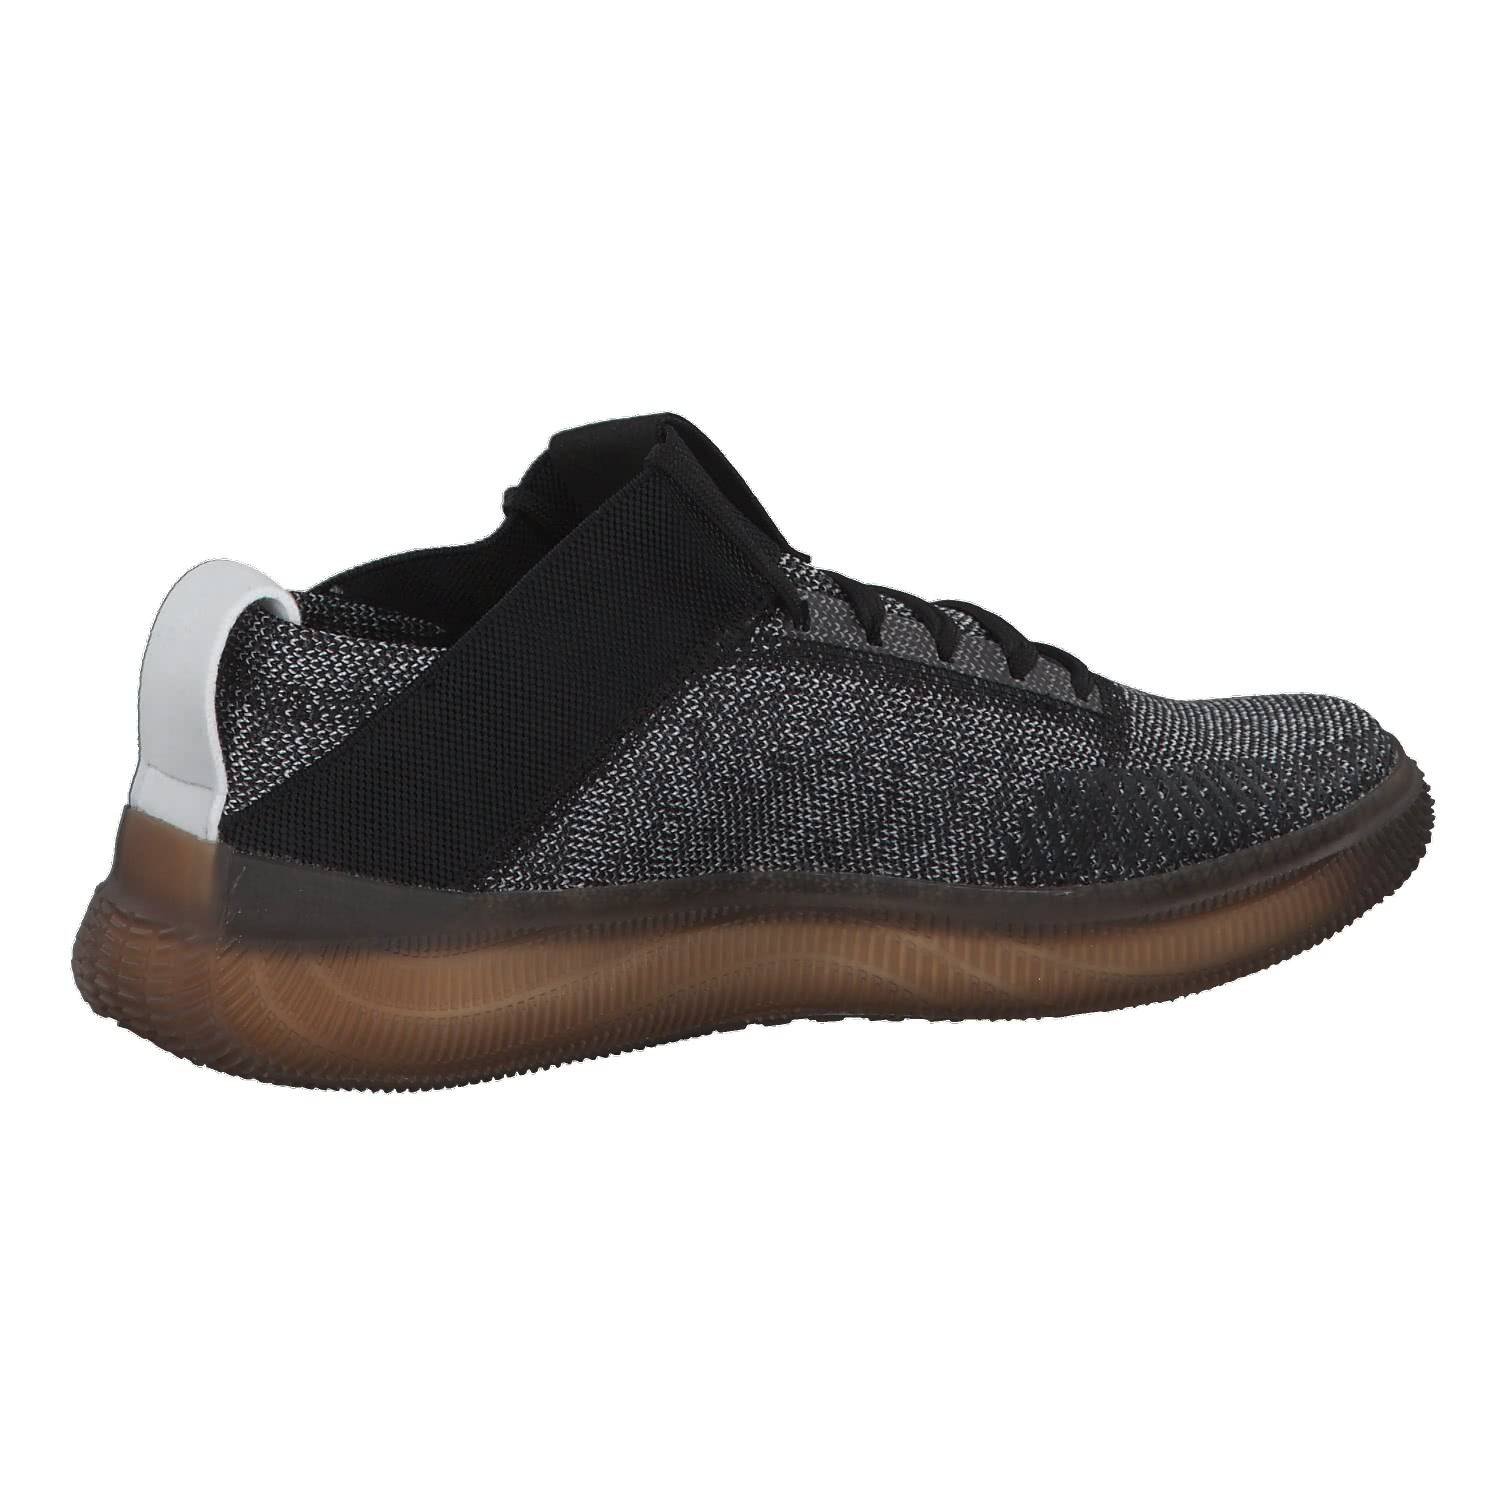 adidas Damen Trainingsschuhe PureBOOST TRAINER W BB7218 39 1